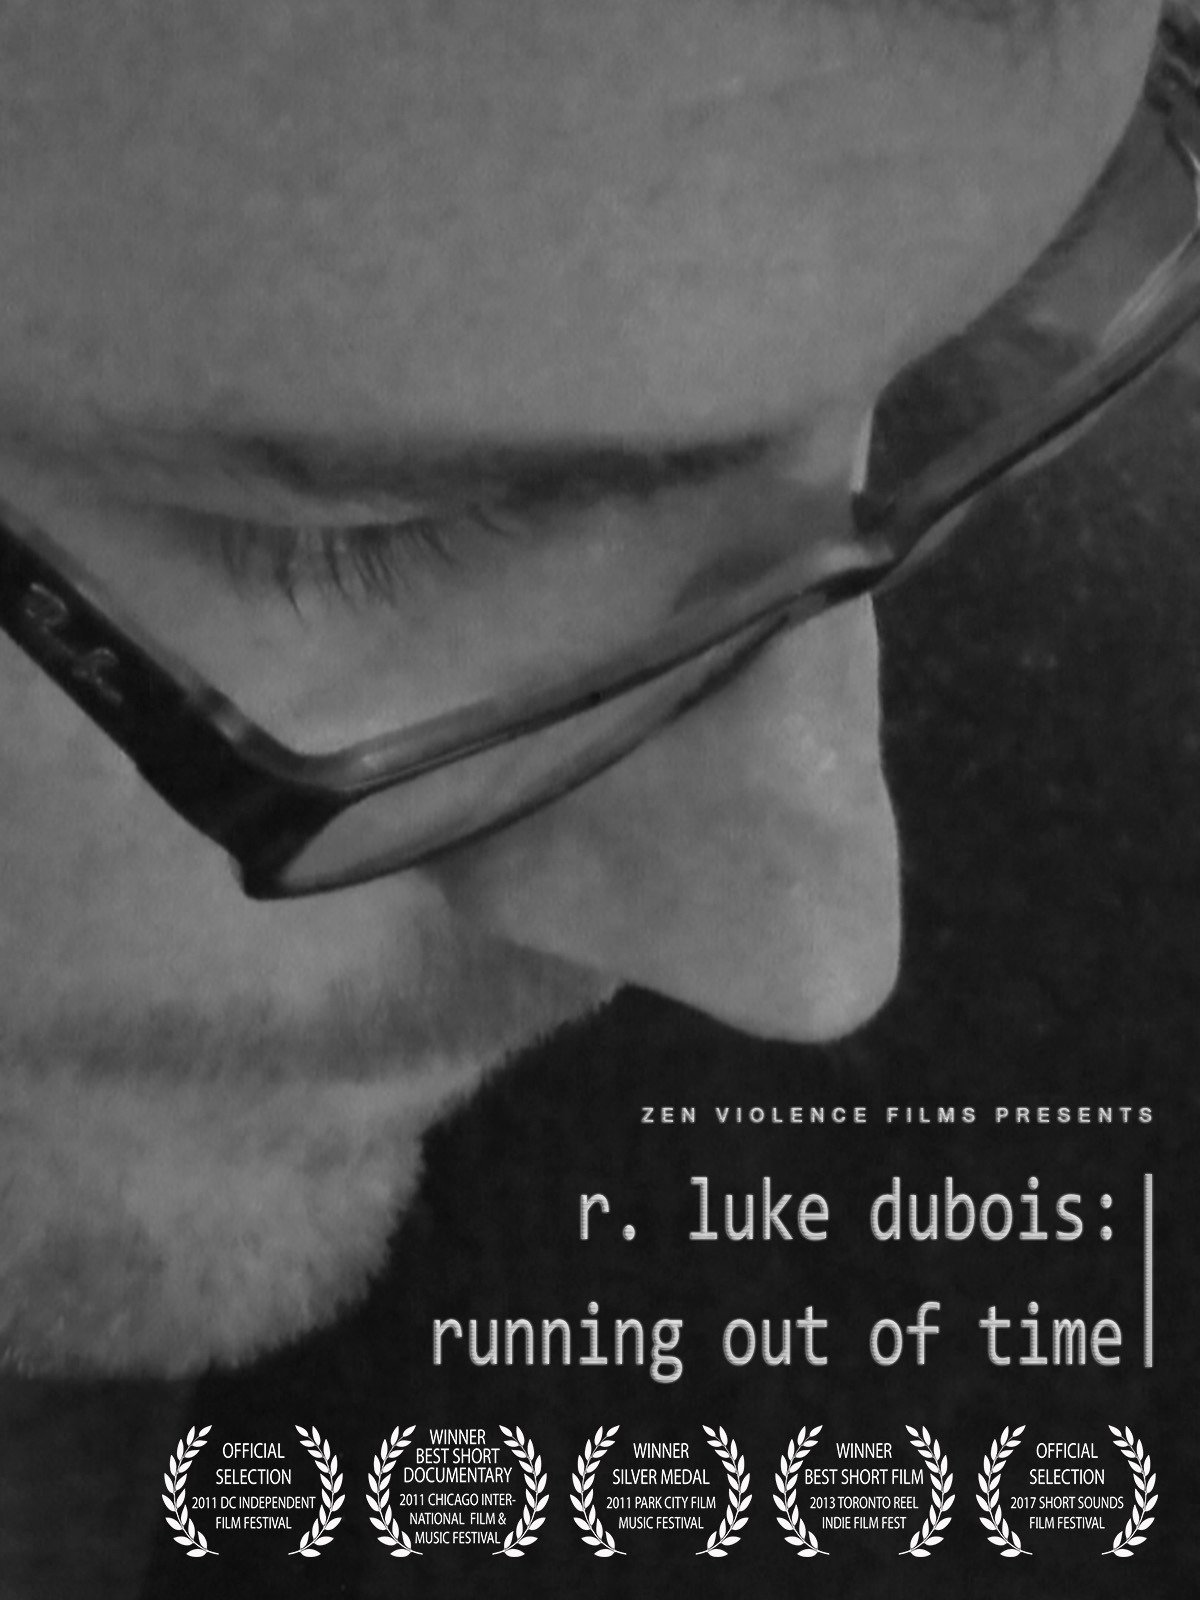 R. Luke DuBois: Running Out of Time